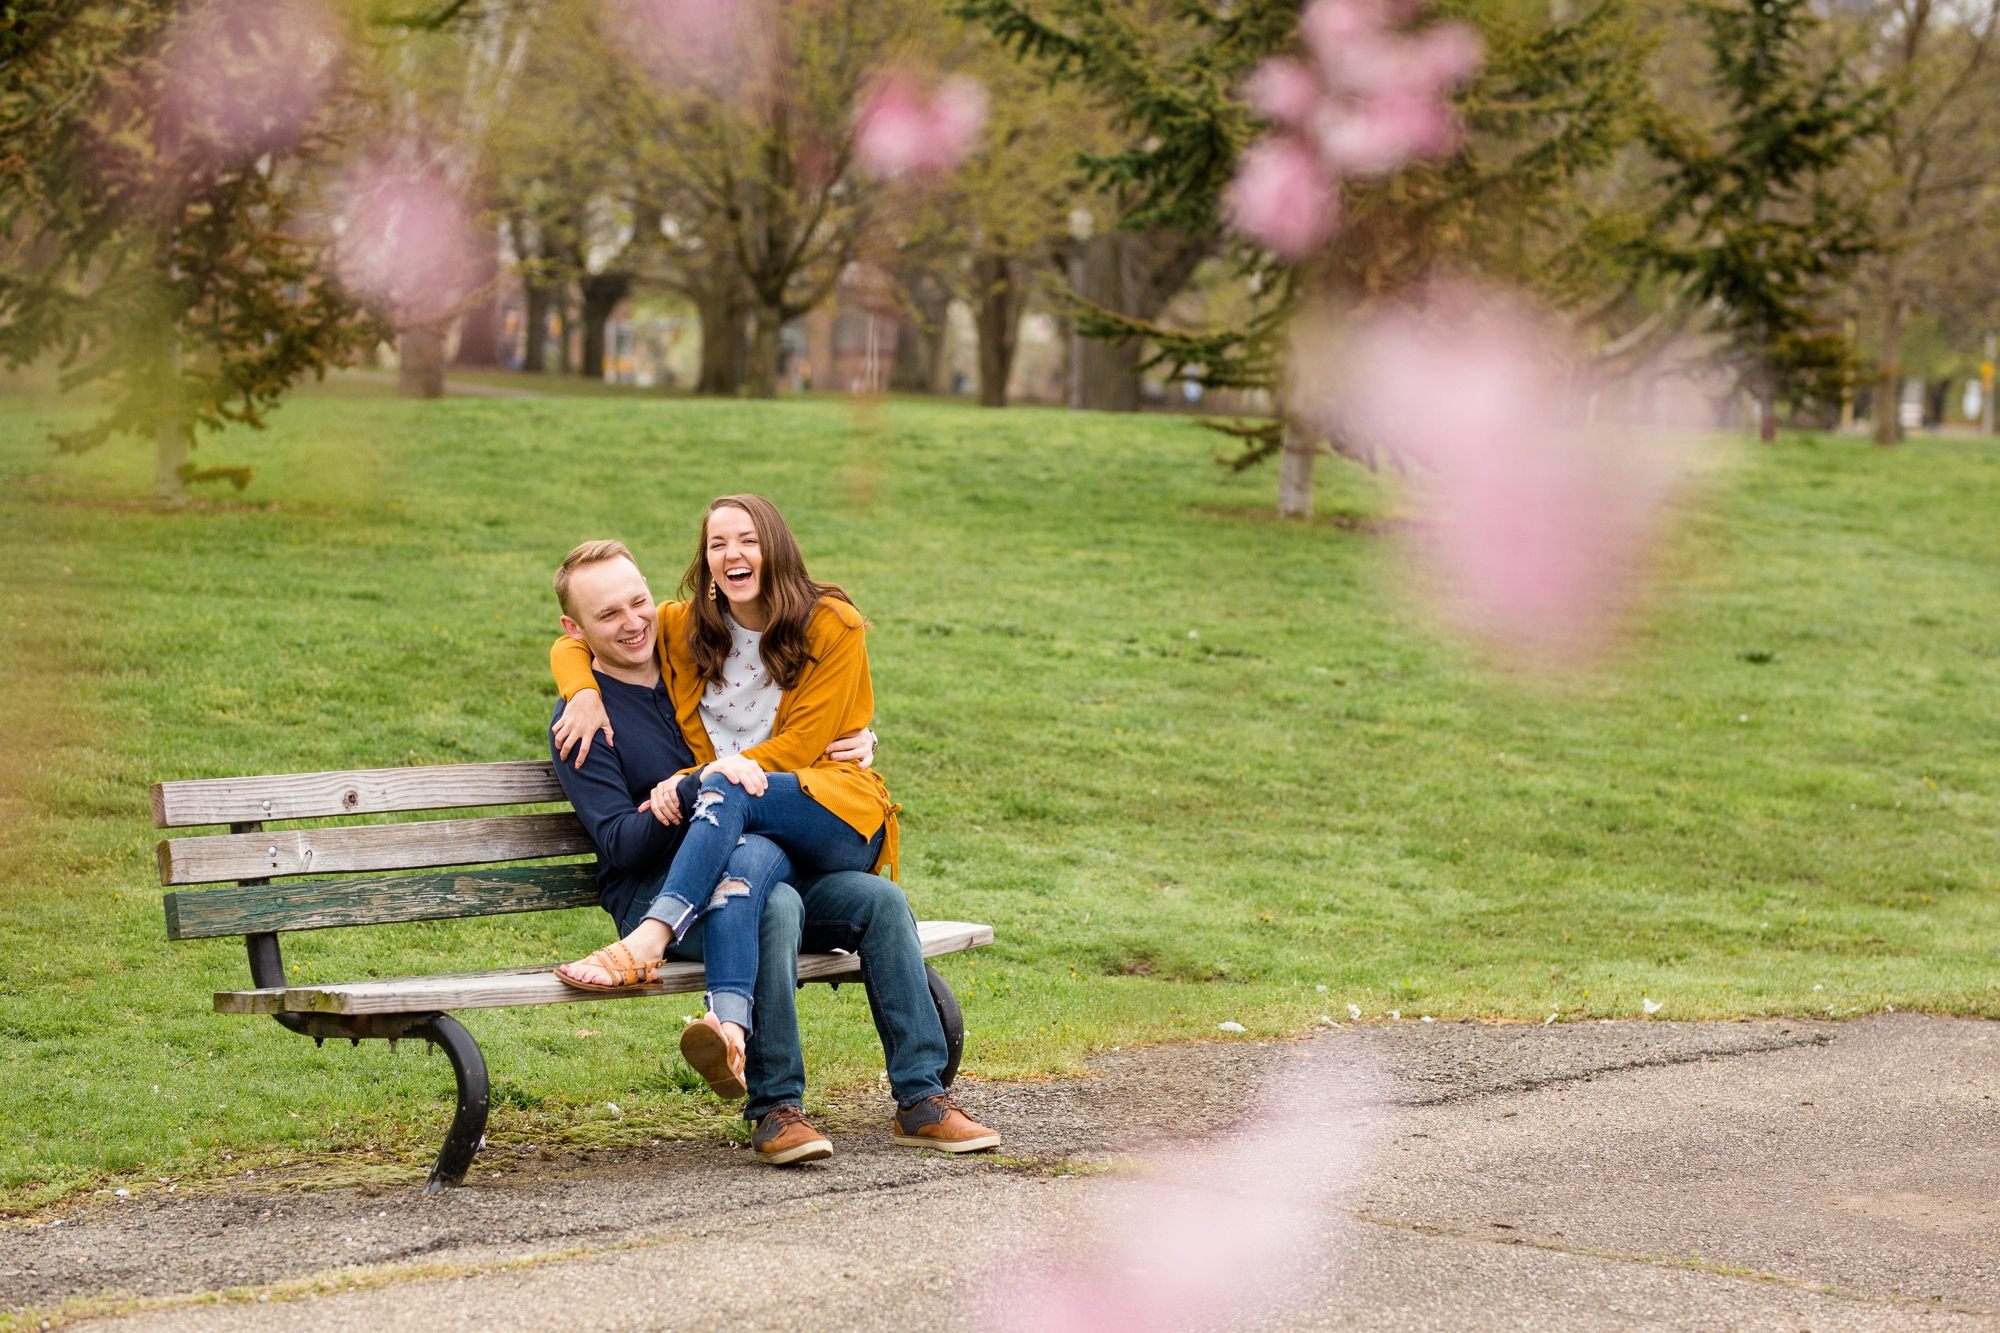 allegheny commons park engagement photos, north shore engagement photos, north side engagement photos, mexican war streets, spring pittsburgh engagement, pittsburgh wedding photos